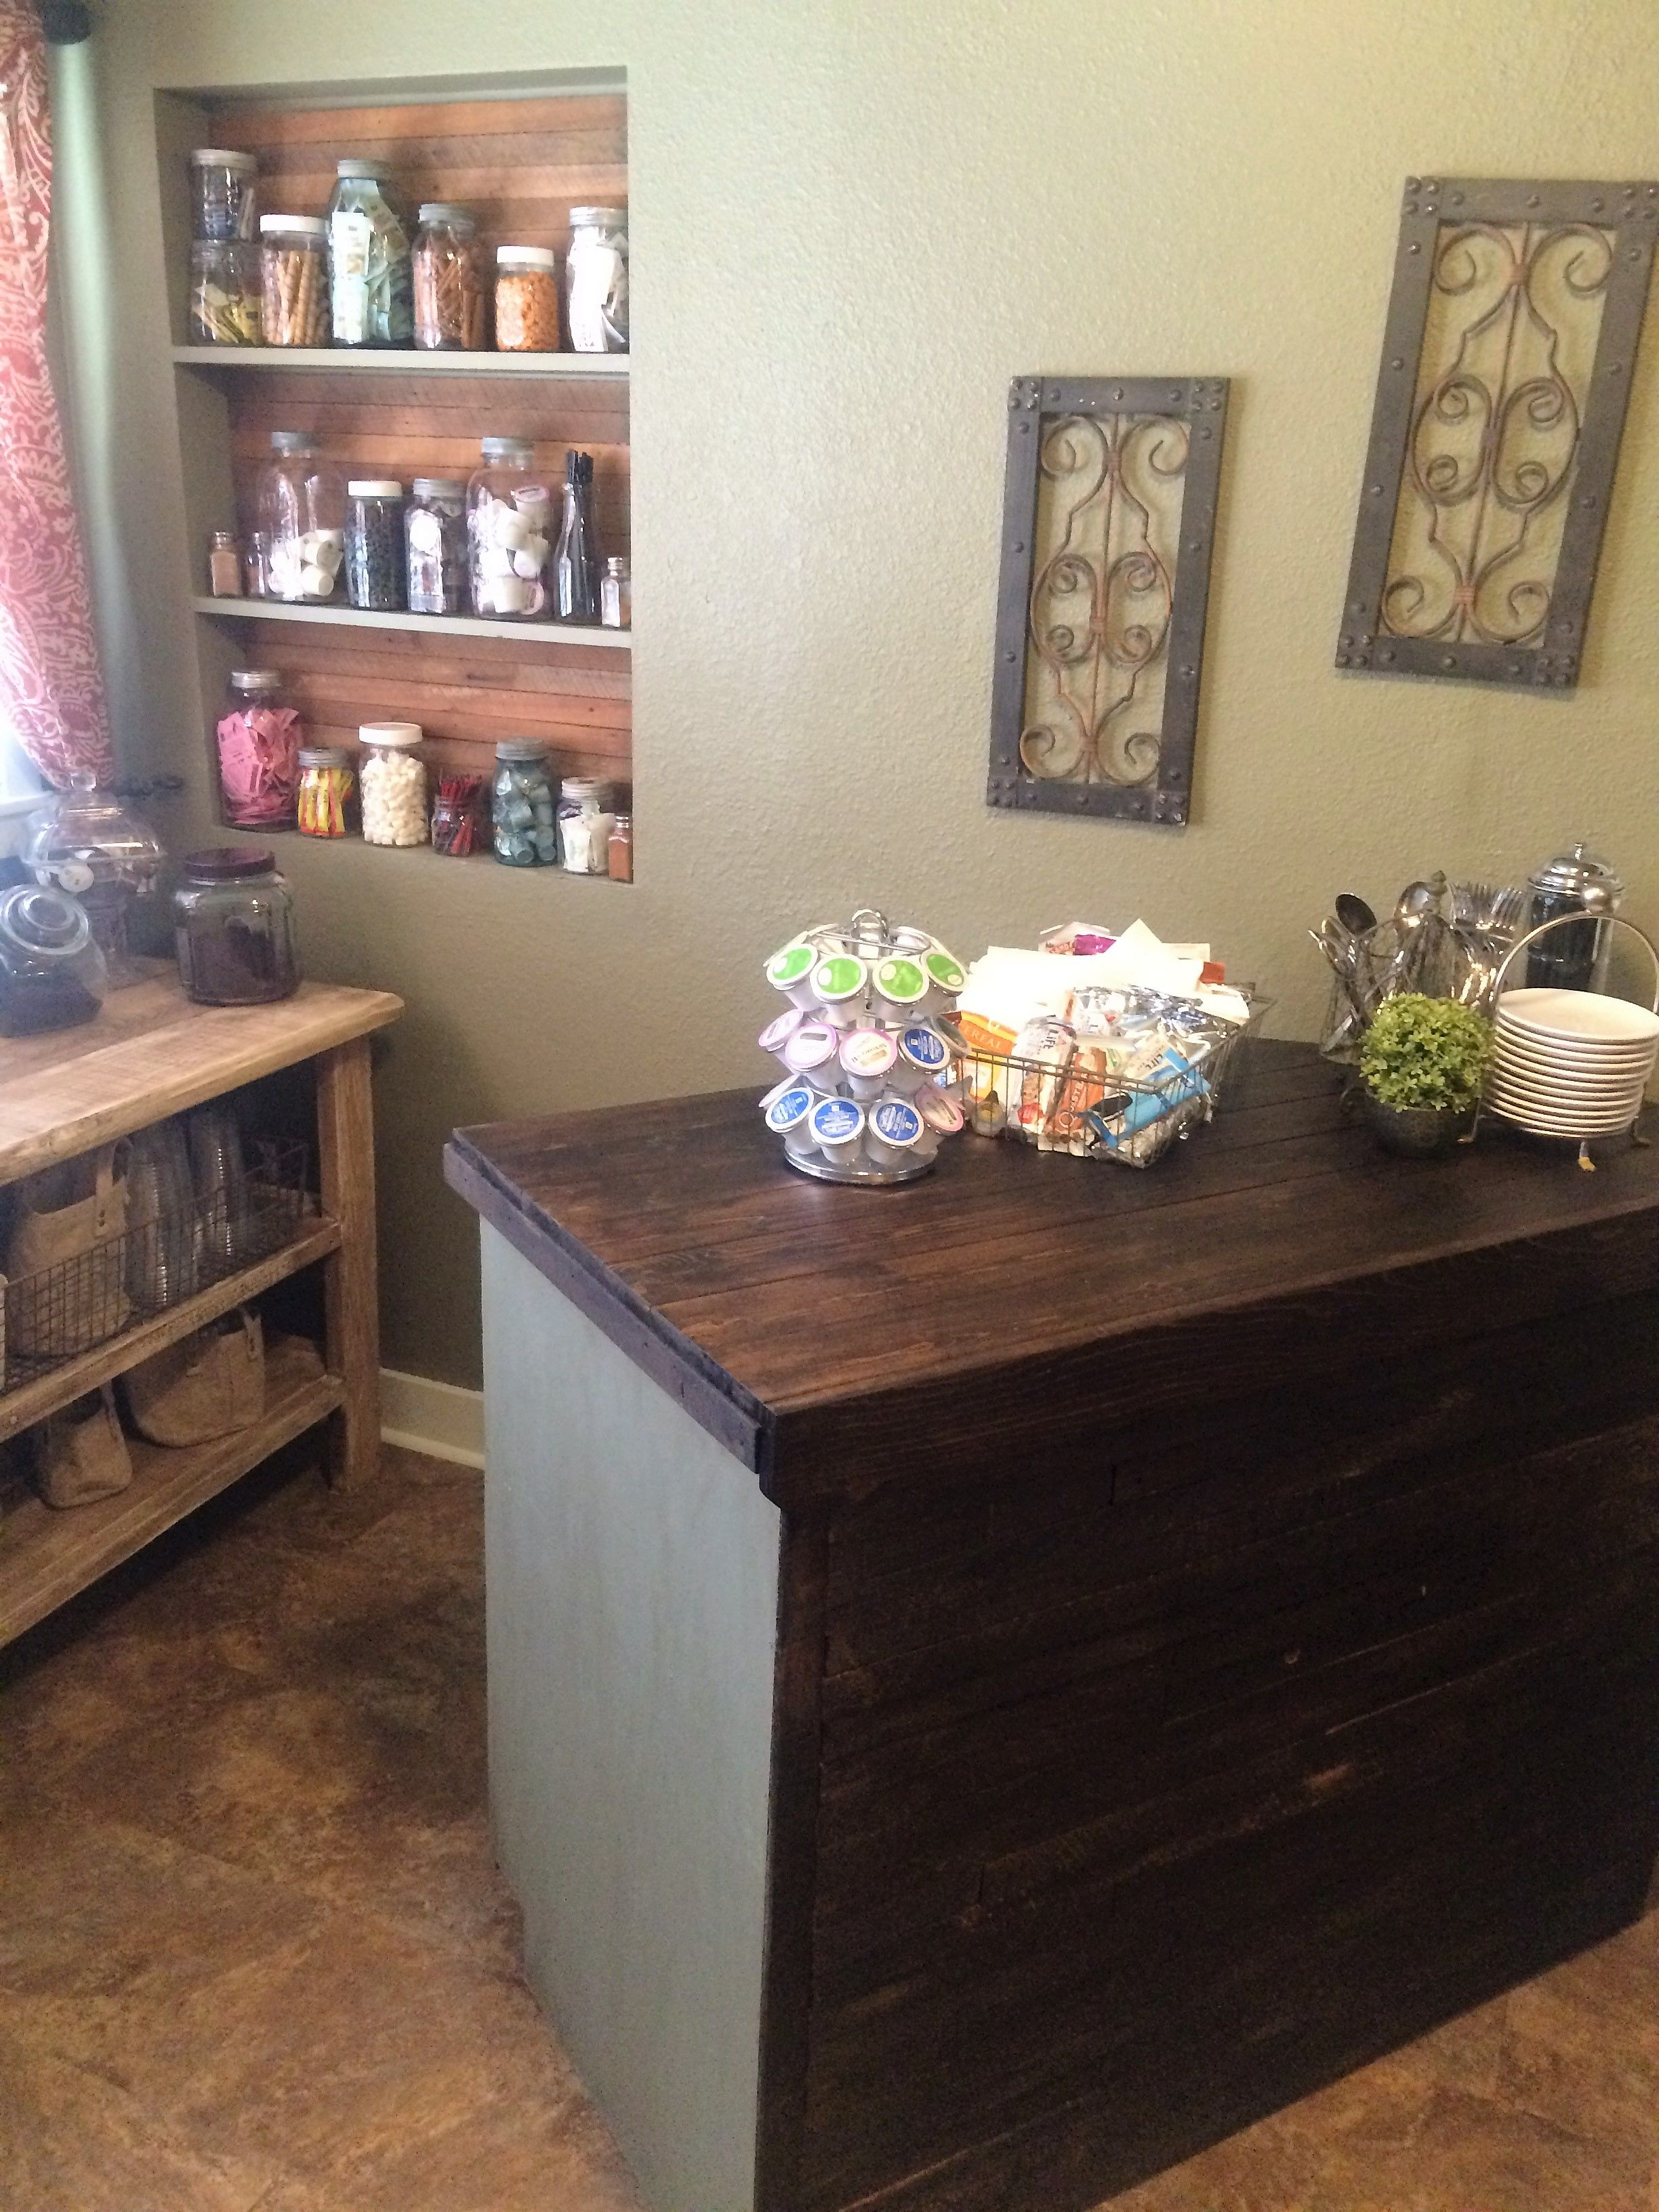 Upcycled cabinet made into a kitchen bar | Upcycled ...